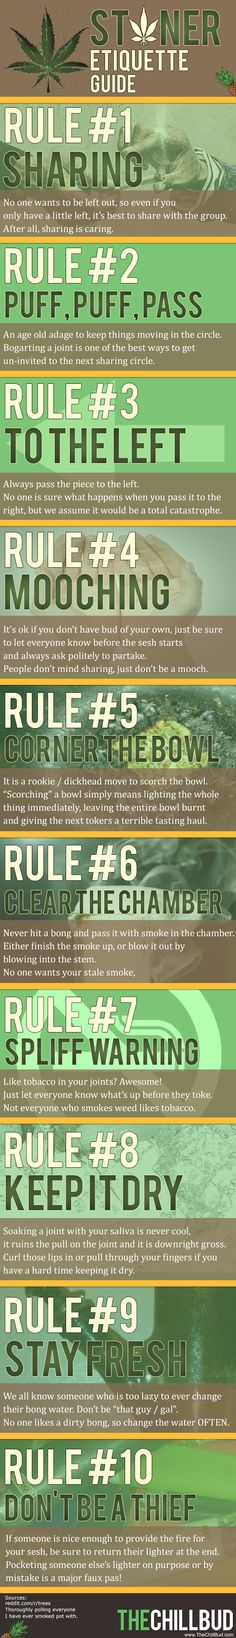 The Complete Stoner Etiquette Guide.   ........................................................ Please save this pin... ........................................................... Because For Real Estate Investing... Visit Now!  OwnItLand.com